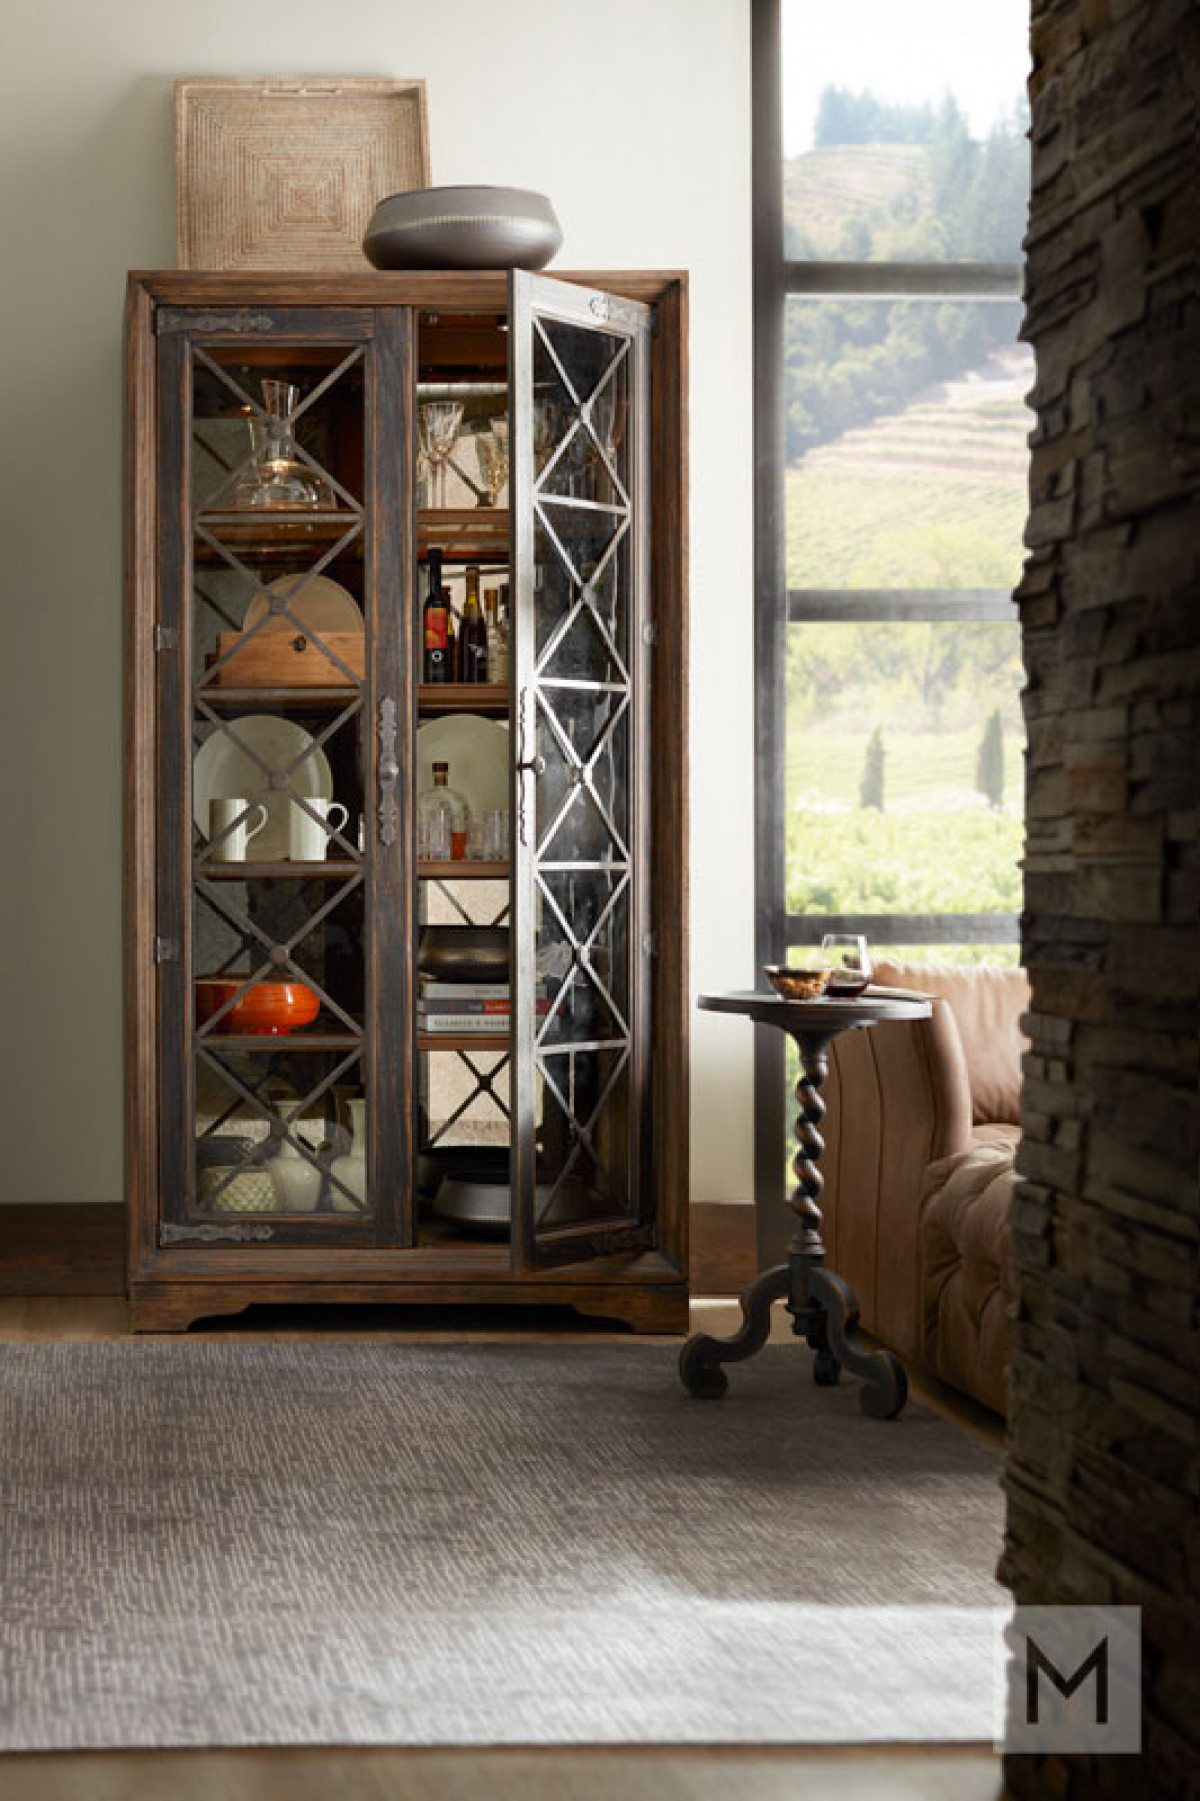 Sattler Display Cabinet featuring Seeded Glass Doors